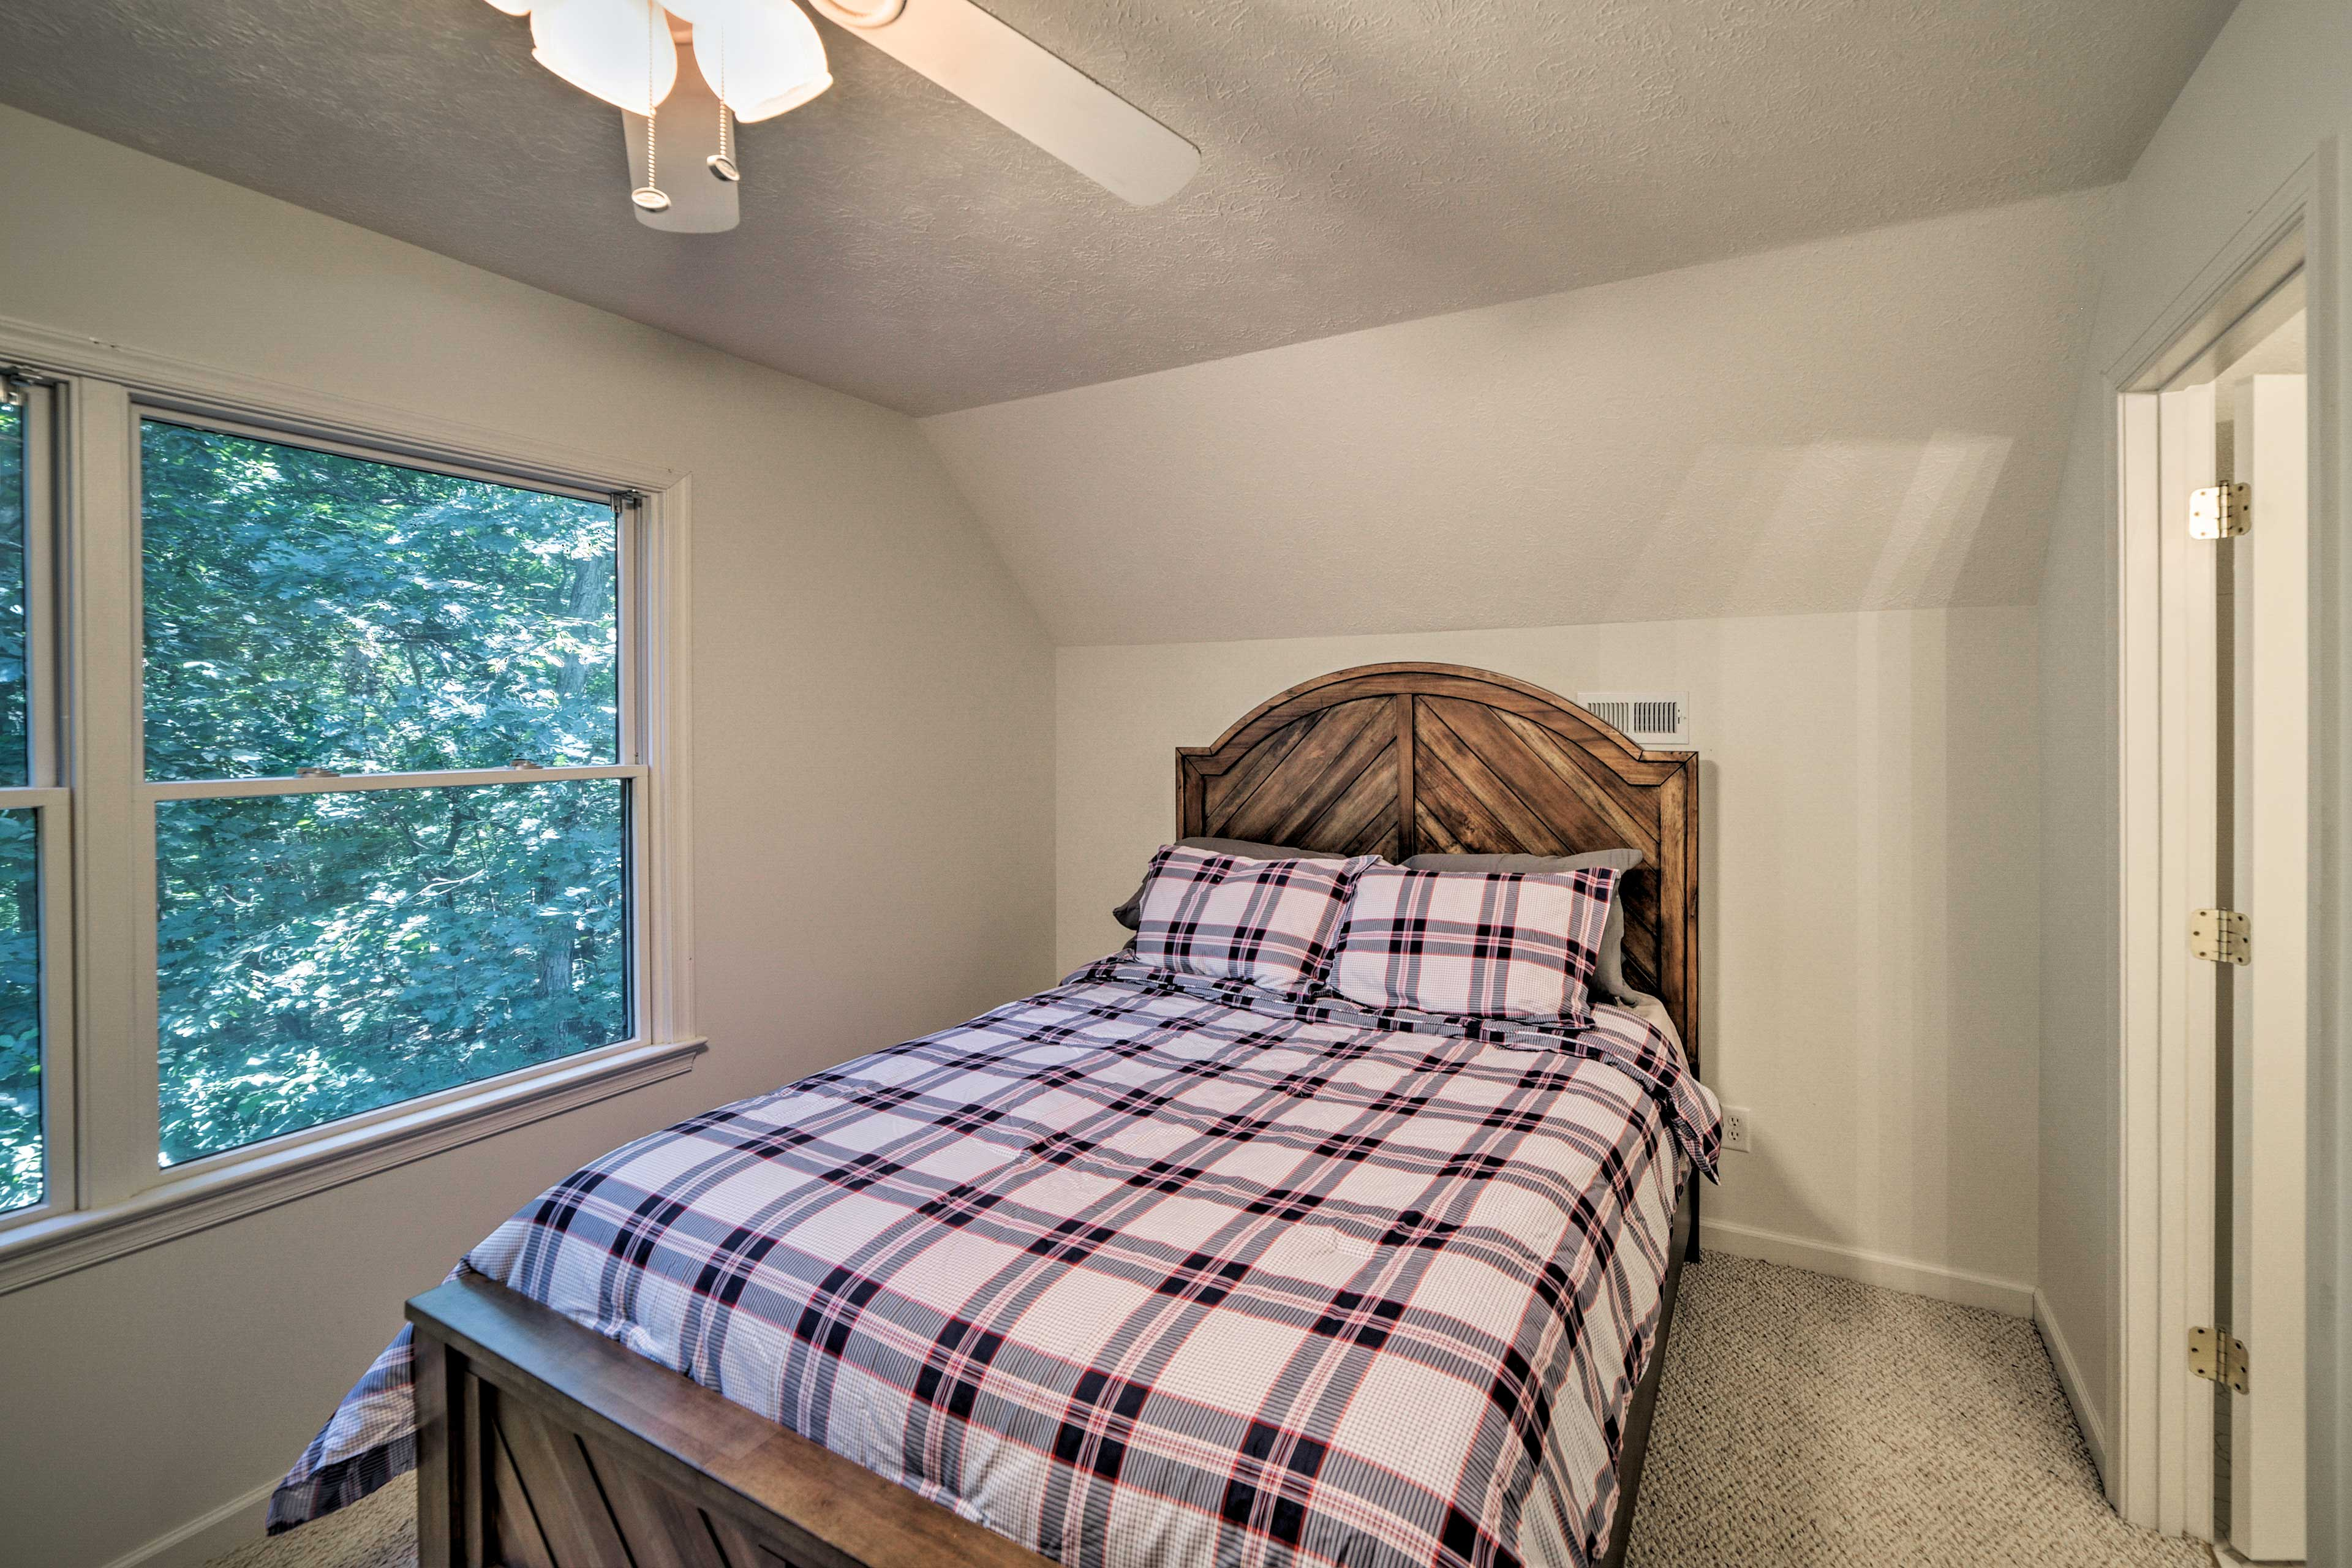 The third bedroom features another queen-sized bed.